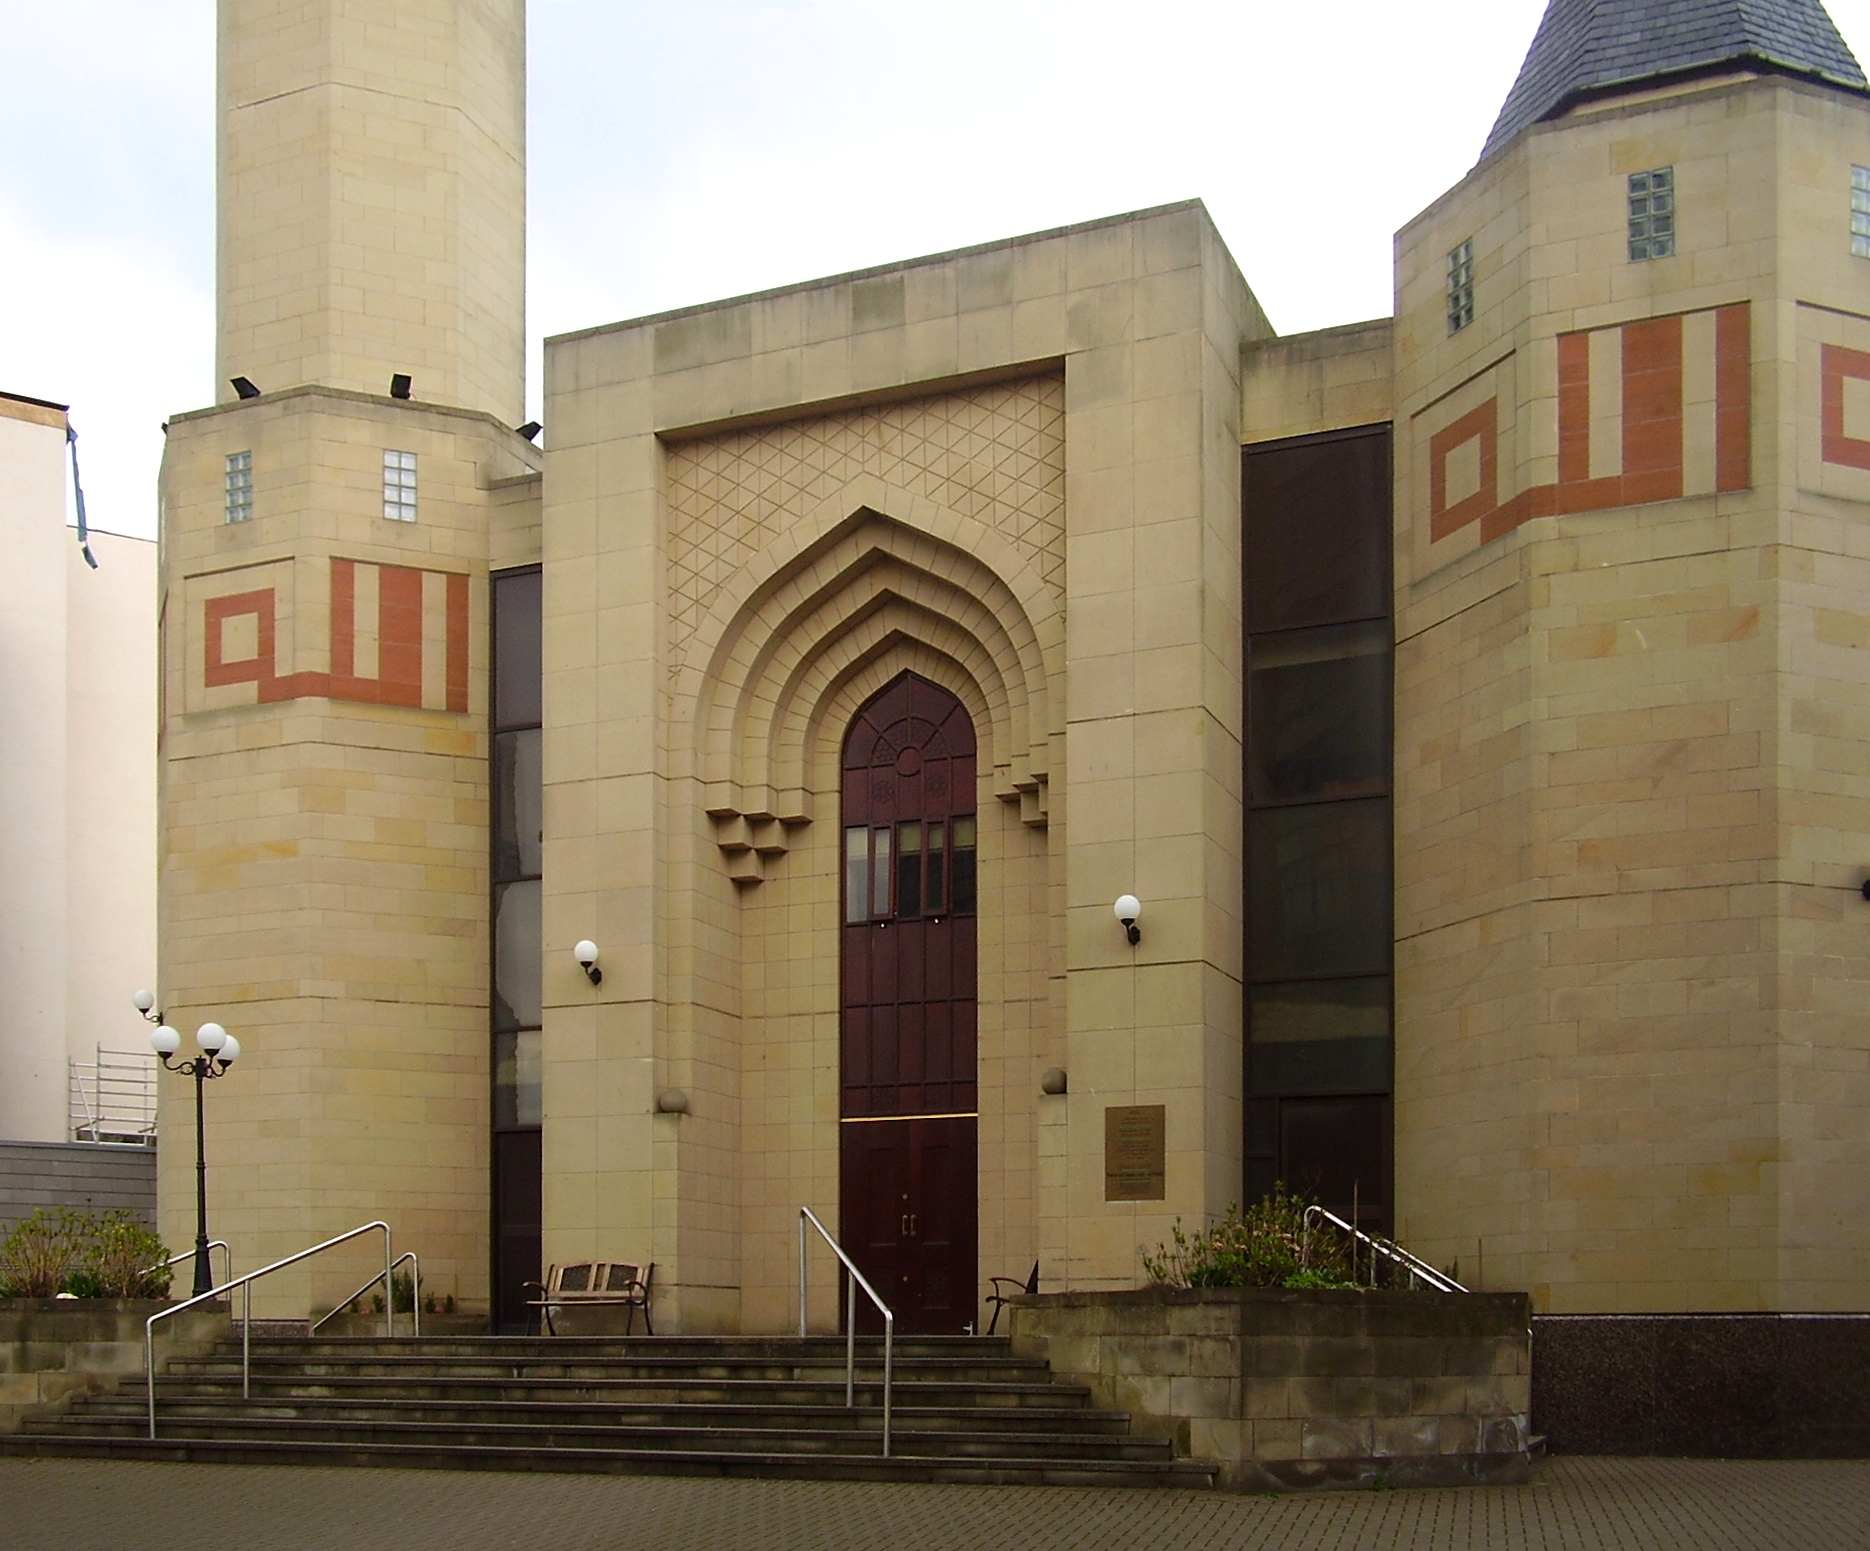 https://i2.wp.com/upload.wikimedia.org/wikipedia/commons/f/f7/Edinburgh_central_mosque_edit.jpg